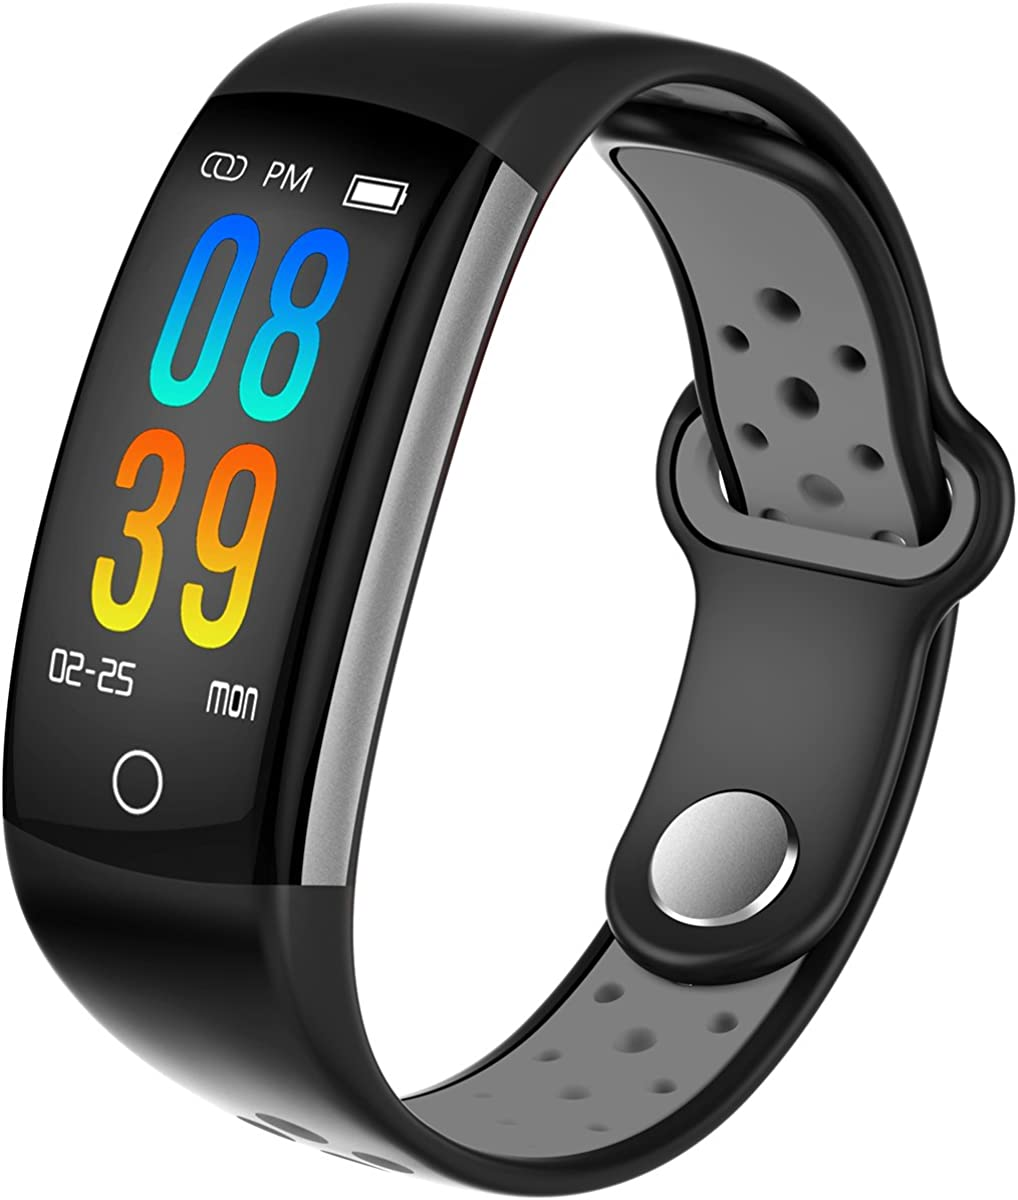 Fitness Tracker Watch Heart Rate Blood Pressure Monitor Bluetooth IP67 Waterproof Color Screen Activity Tracker Step Calorie Counter Pedometer